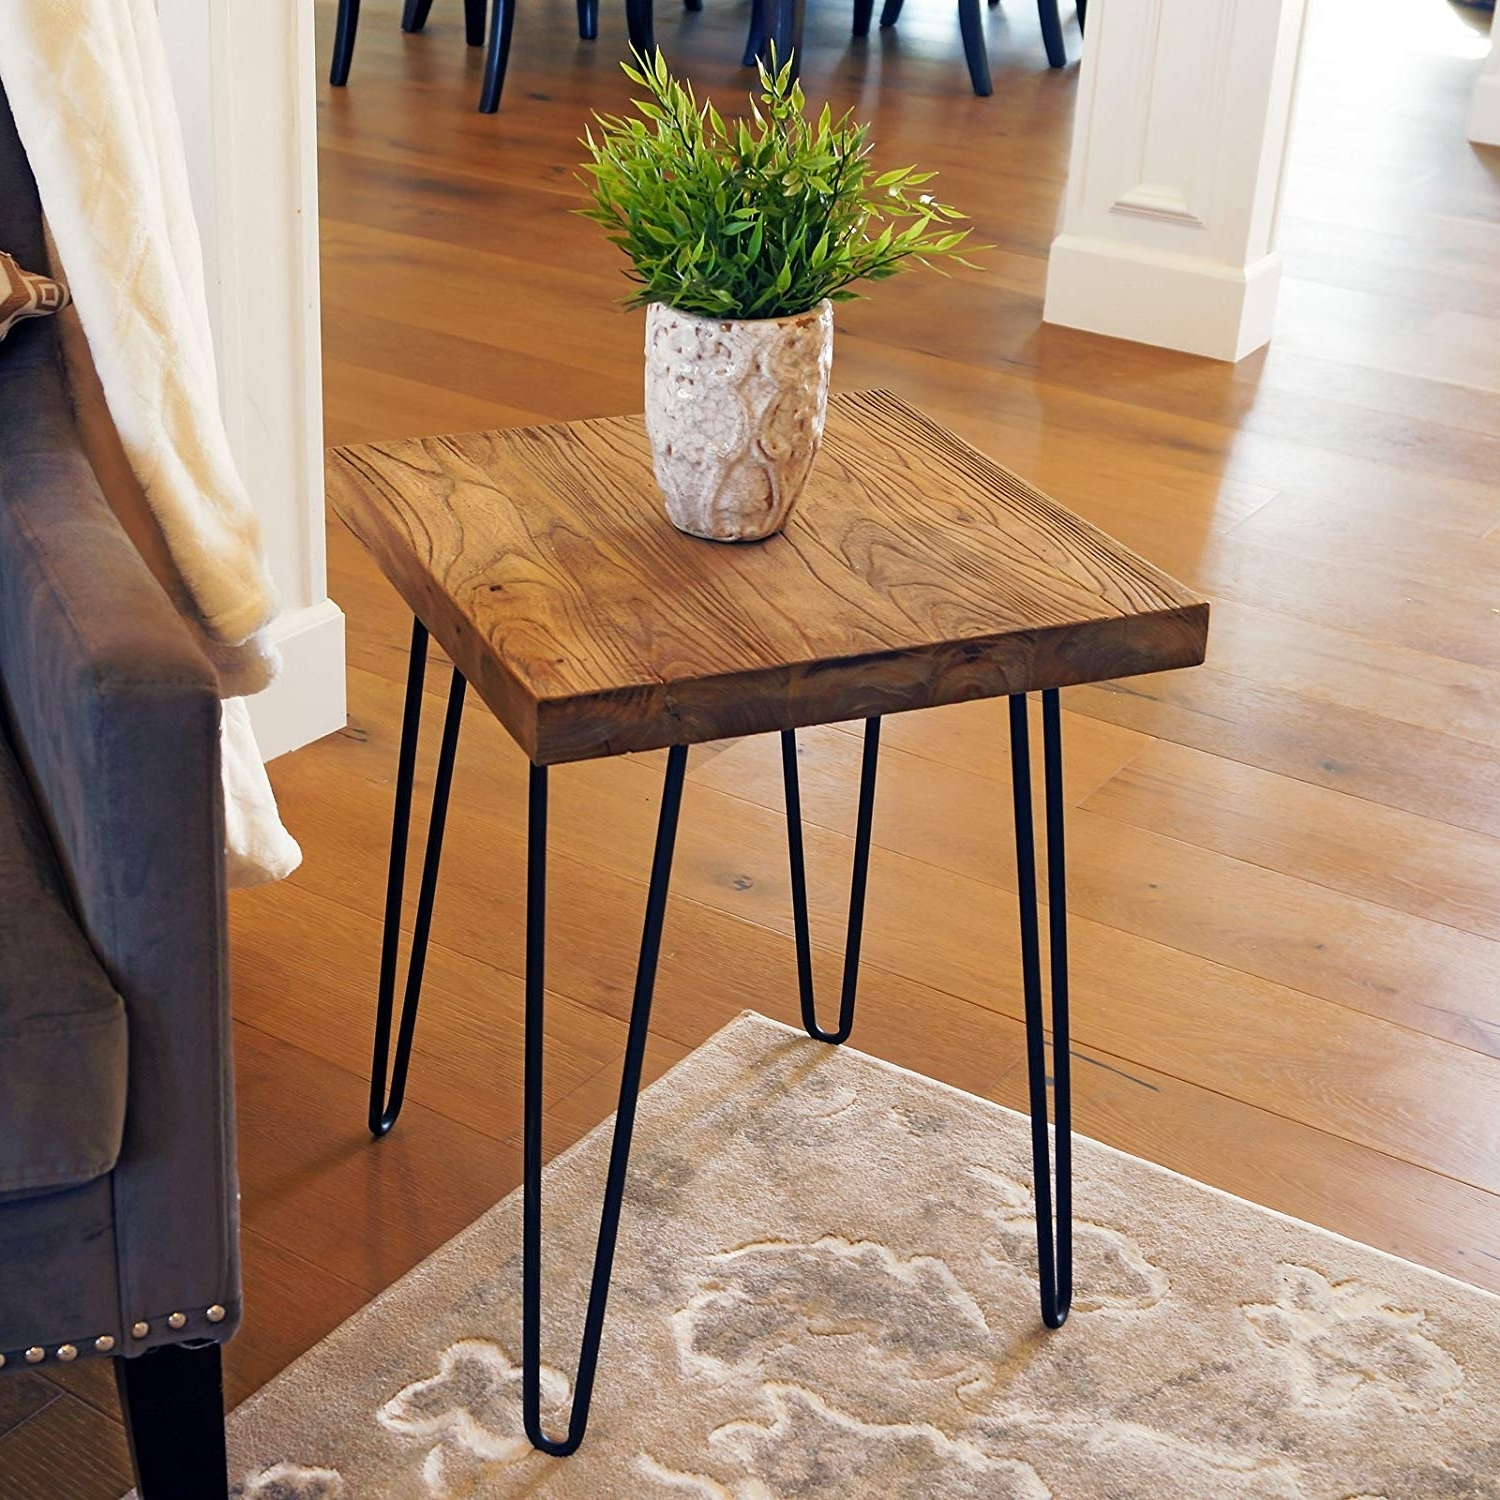 Natural Wood & Recycled Elm 87 Inch Dining Tables Pertaining To Well Known Amazon: Welland Square Old Elm Wood End Table Rustic Surface (Gallery 1 of 25)